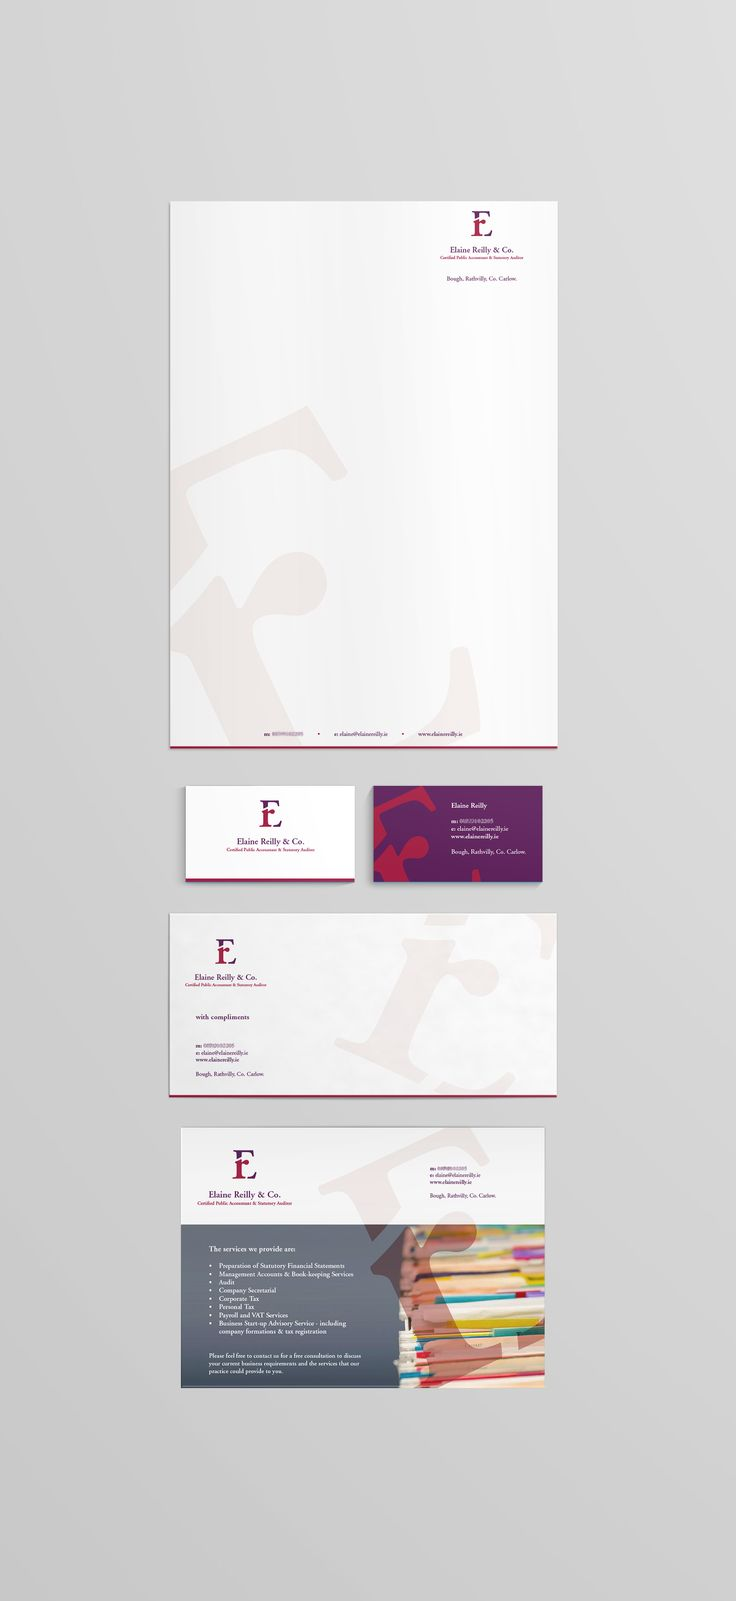 Letterhead, Business Card, Compliment Slip and Flyer for Elaine Reilly & Co. www.akgraphics.ie